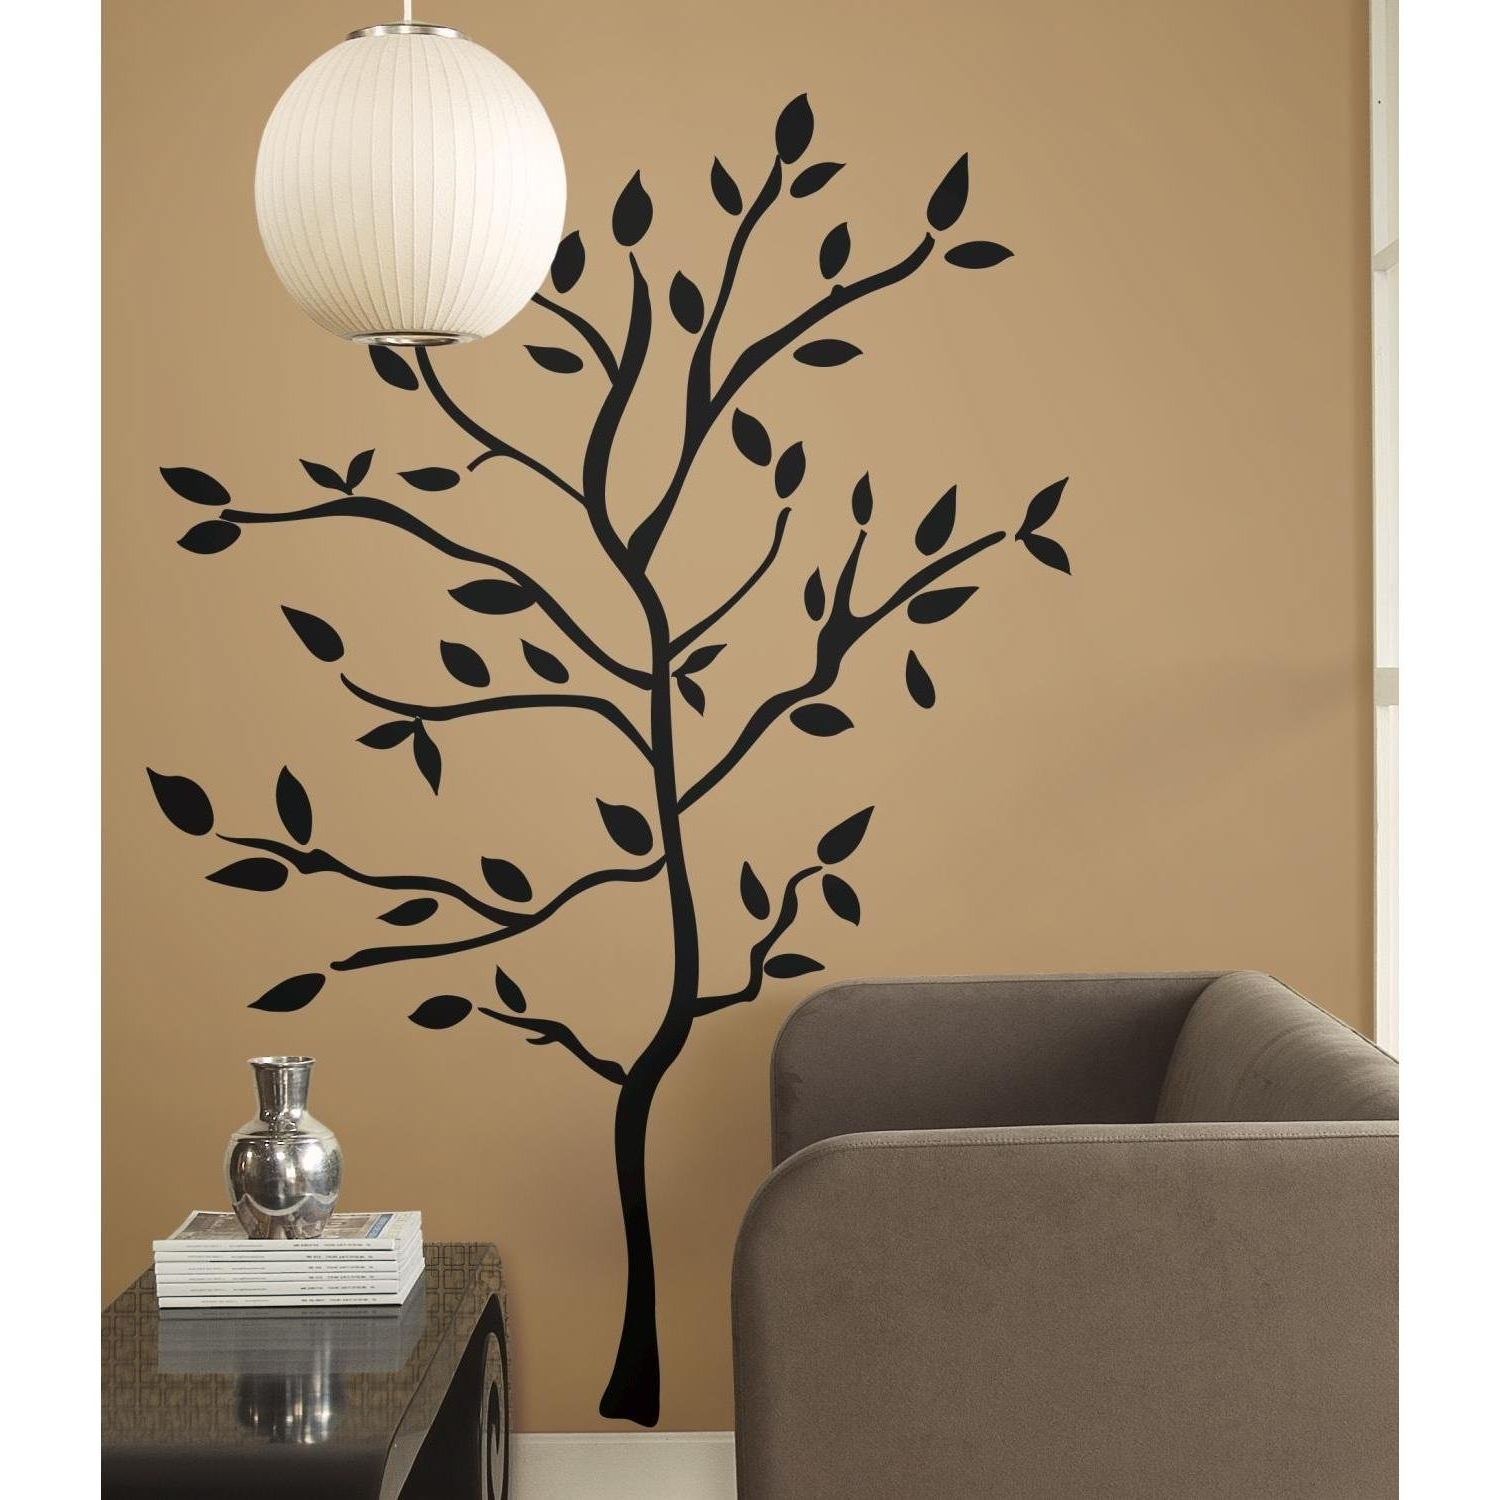 Popular Tree Branch Wall Art For Roommates Rmk1317Gm Tree Branches Peel & Stick Wall Decals – Wall (View 9 of 15)